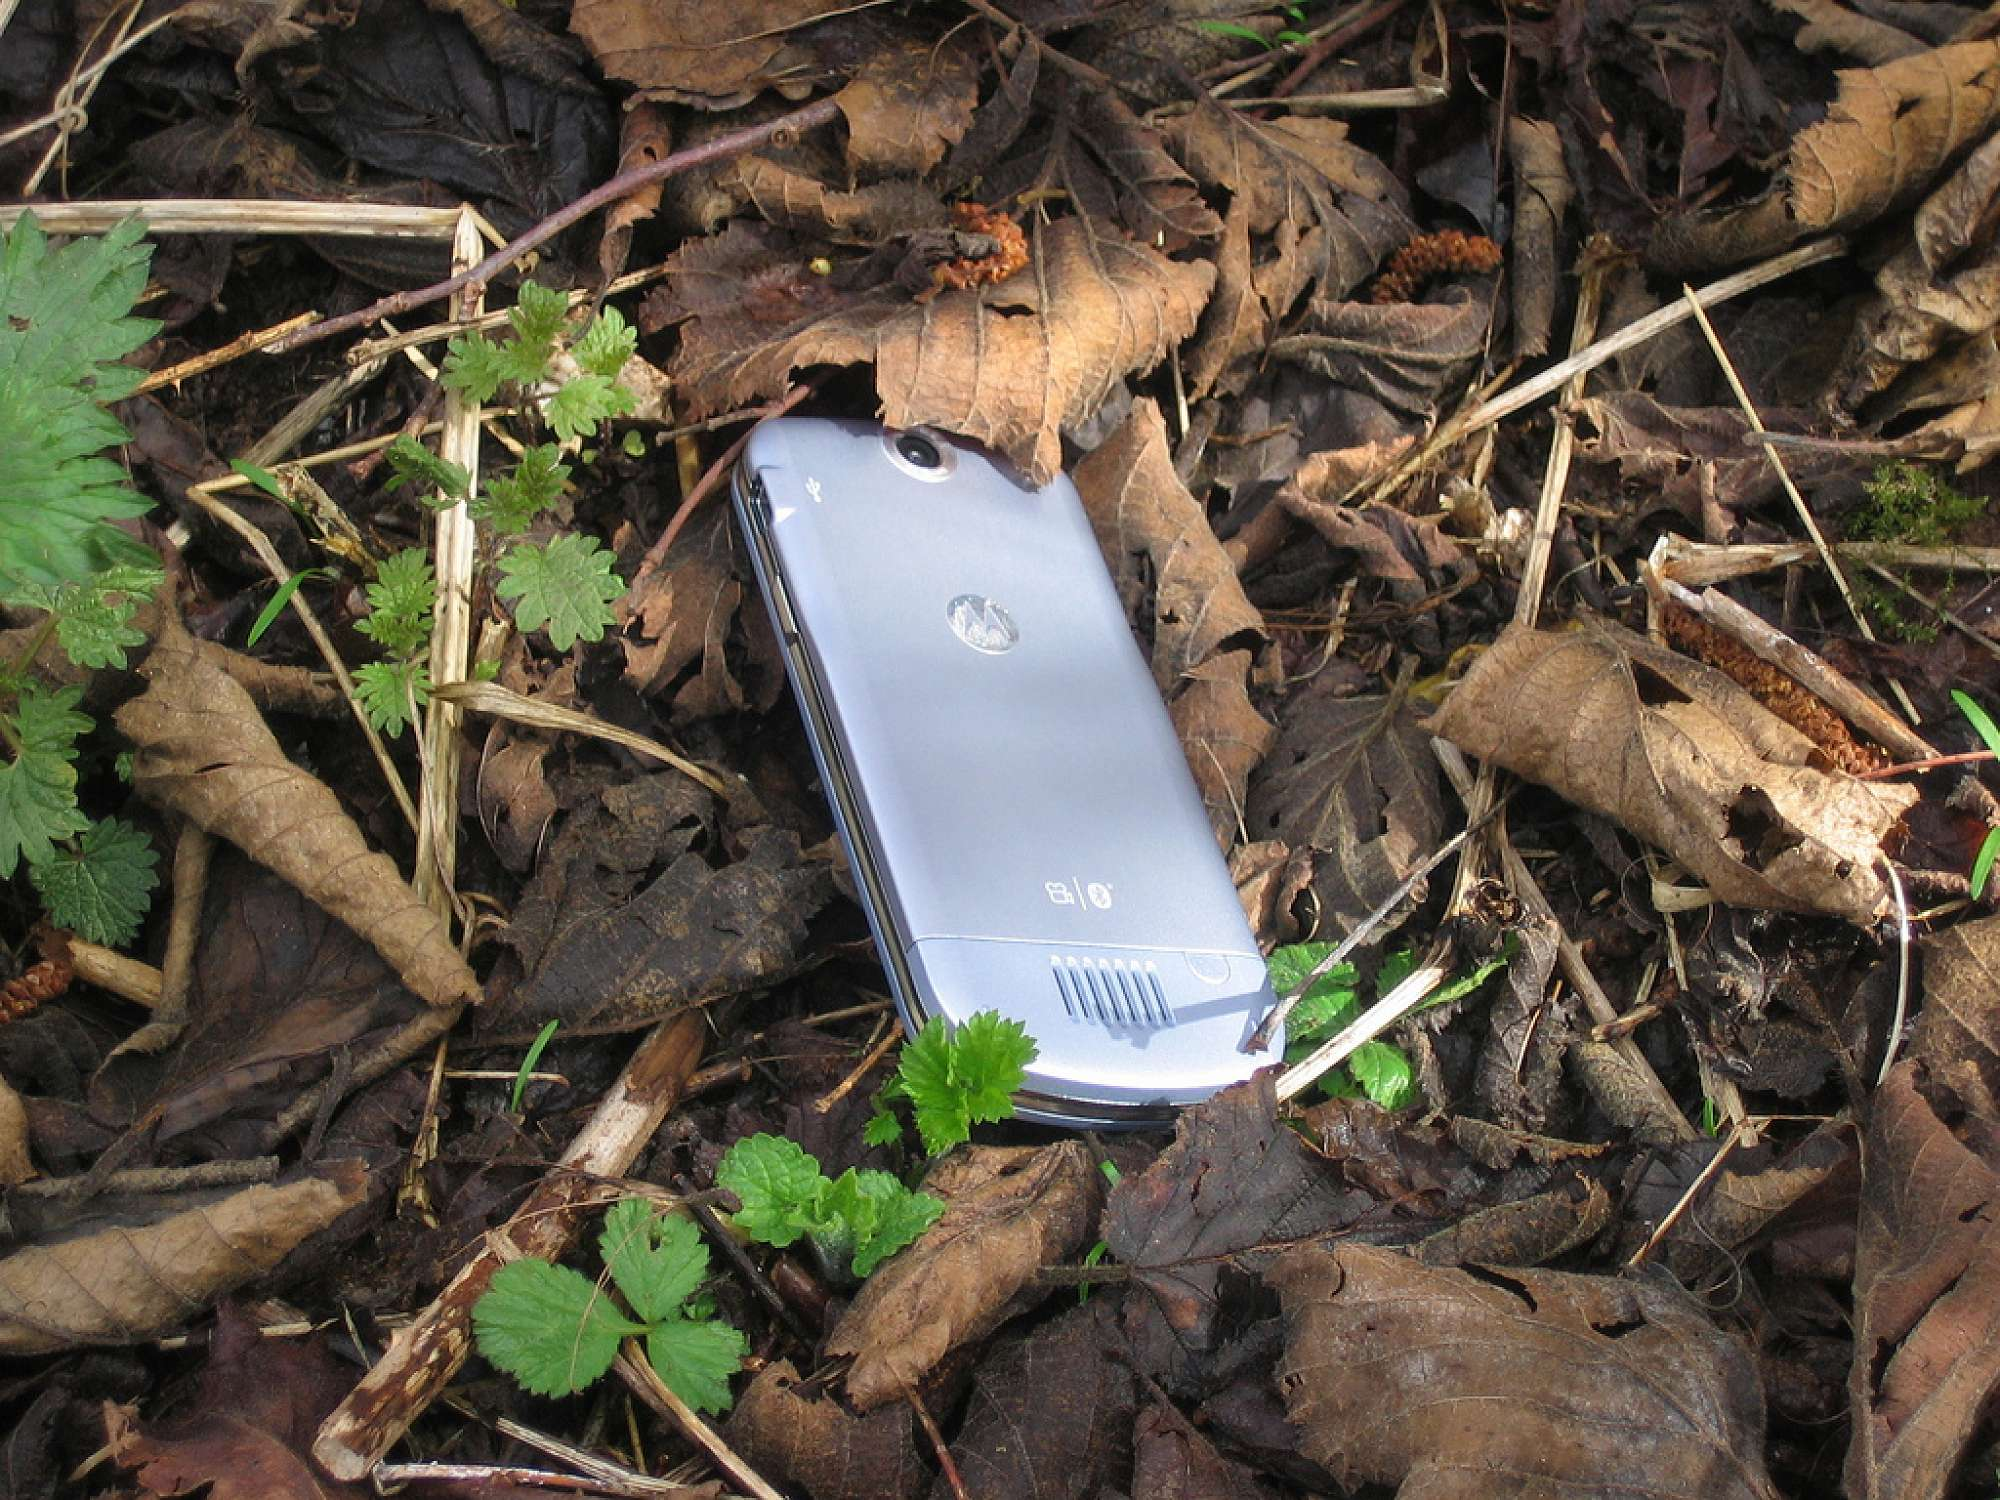 Lost Phone - courtesy of Peter Burka:https://creativecommons.org/licenses/by-sa/2.0/